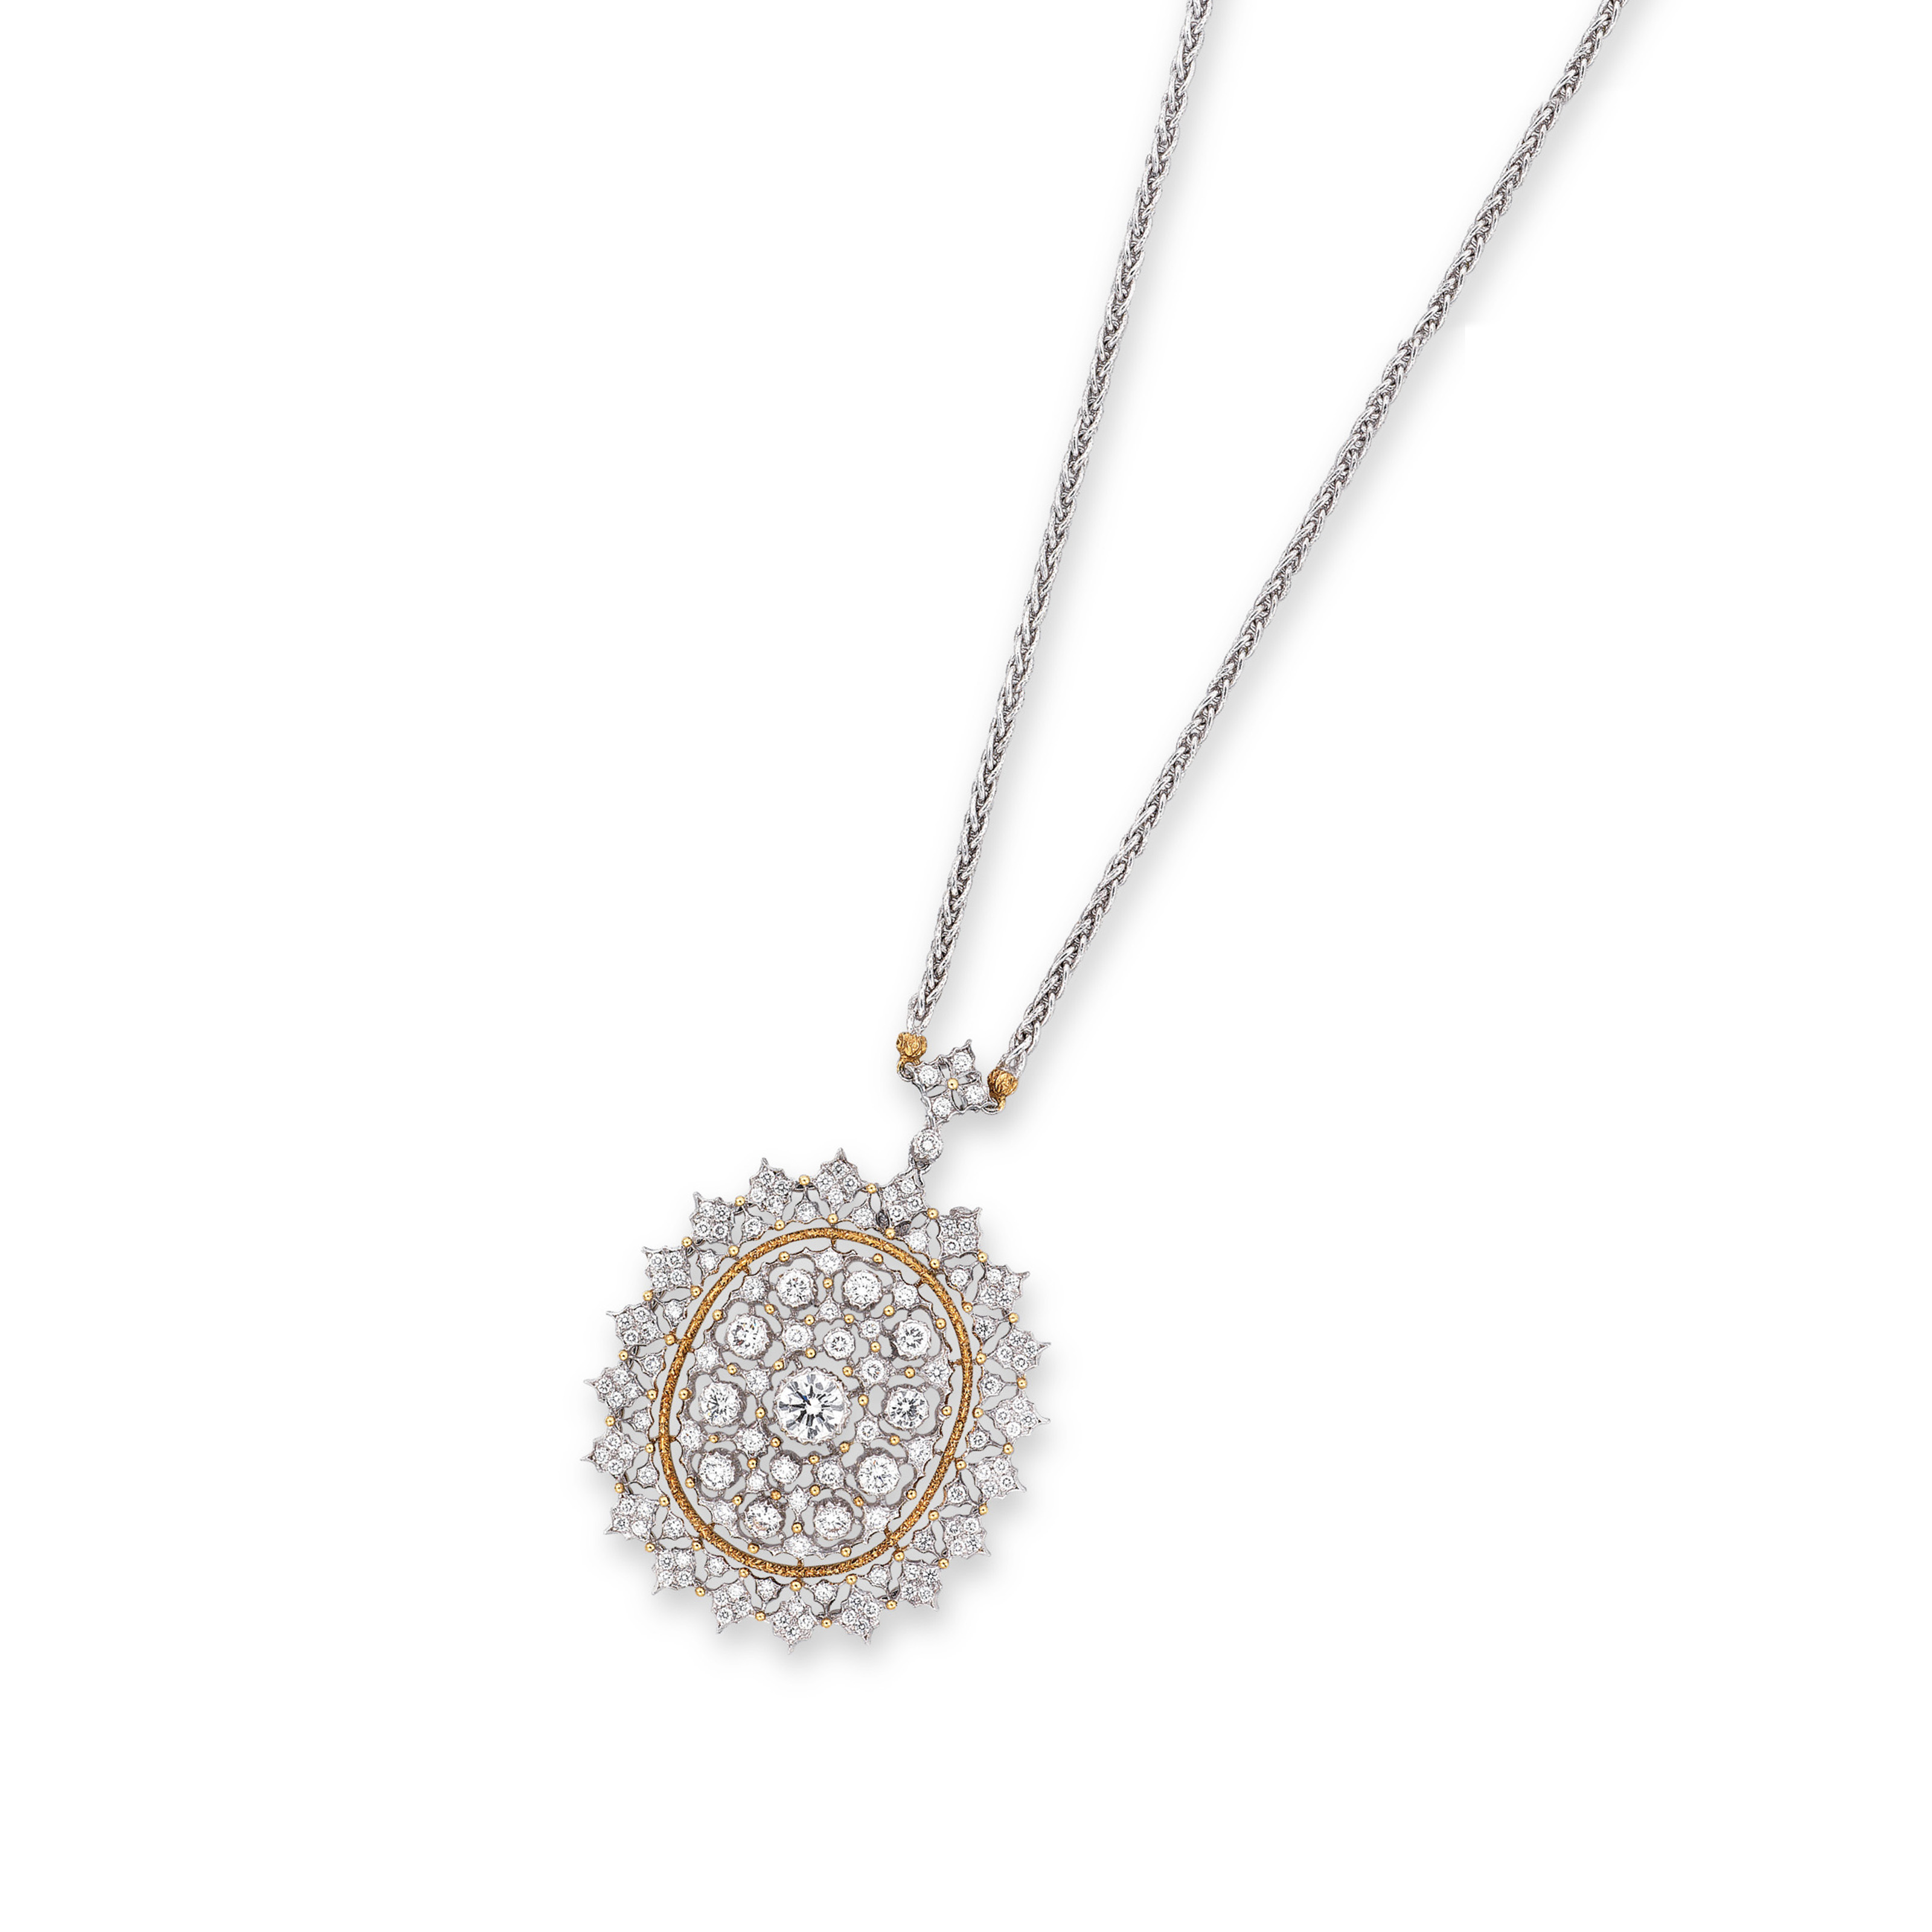 A DIAMOND PENDENT NECKLACE, BY BUCCELLATI